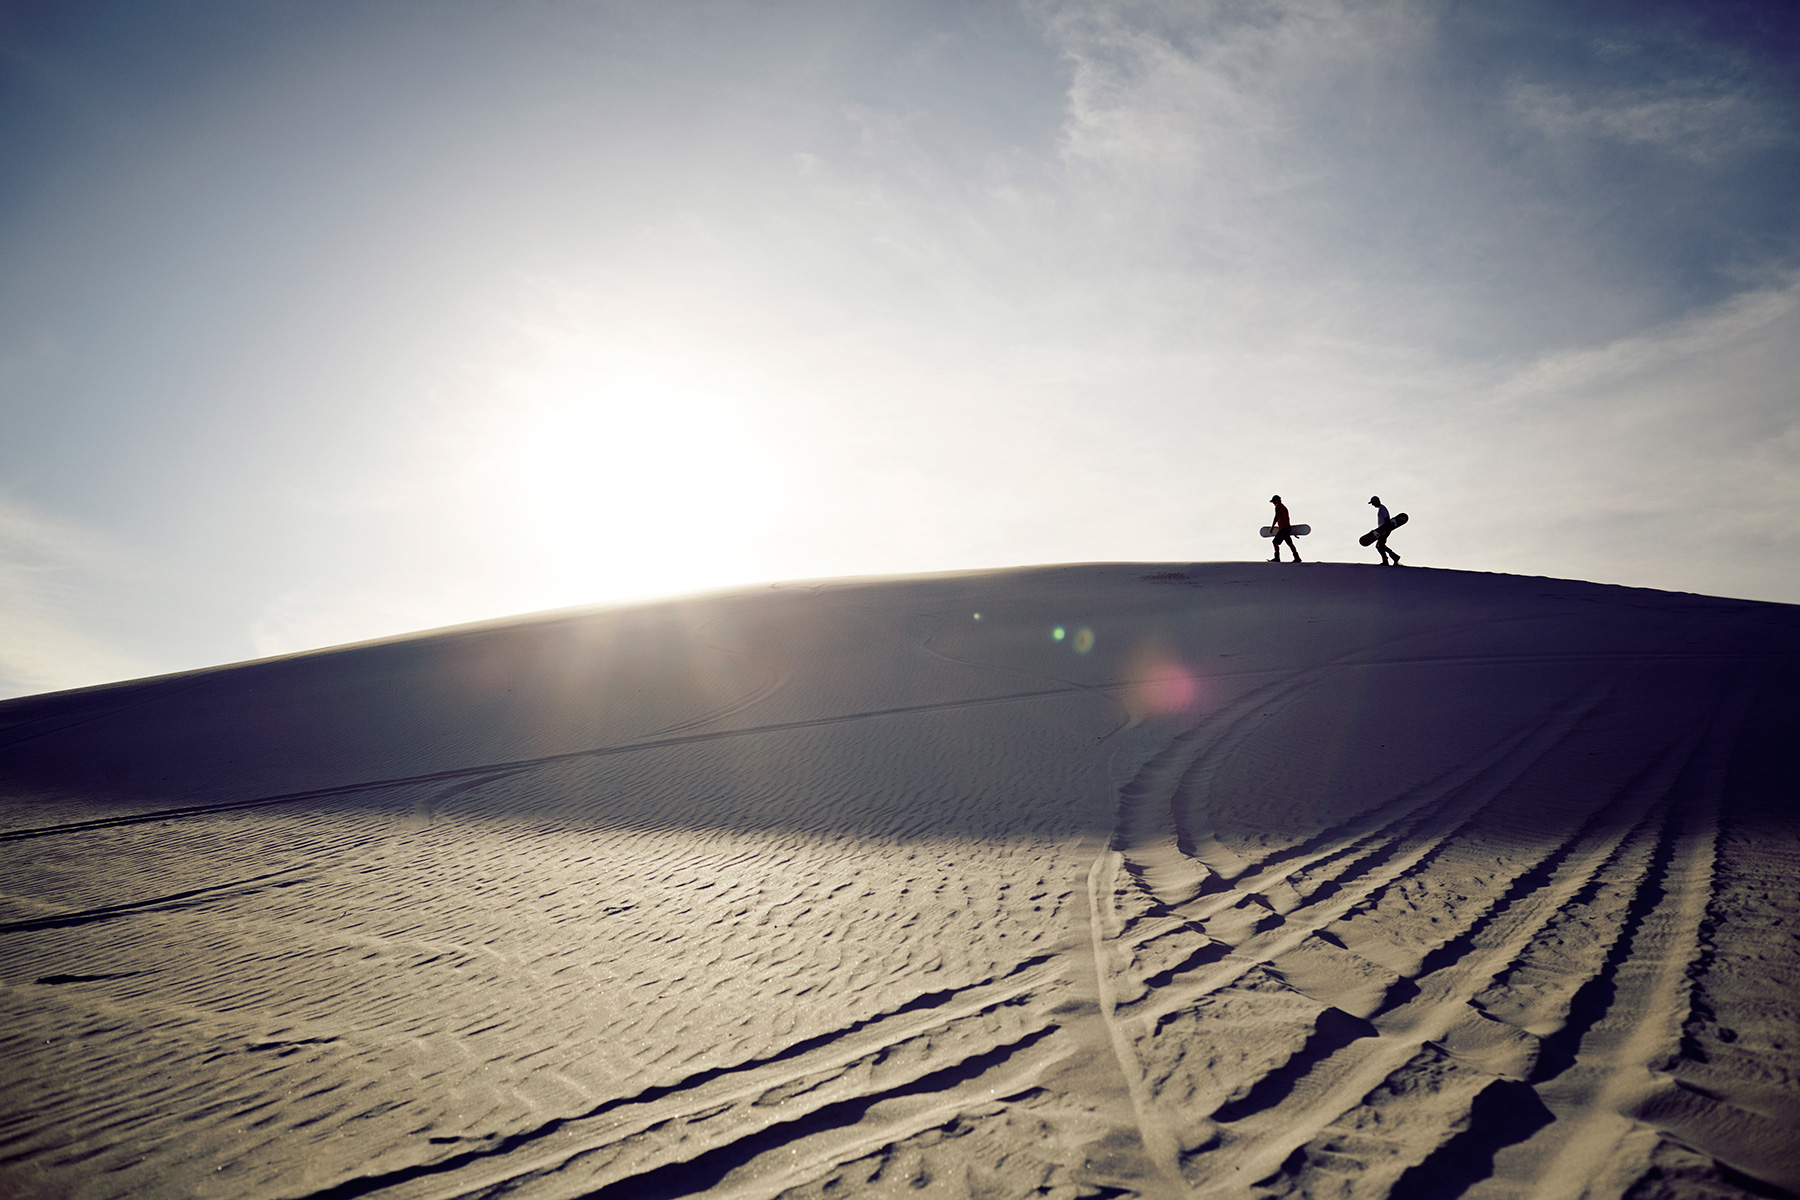 Two sand boarders walking on the edge of sand dune at sunset